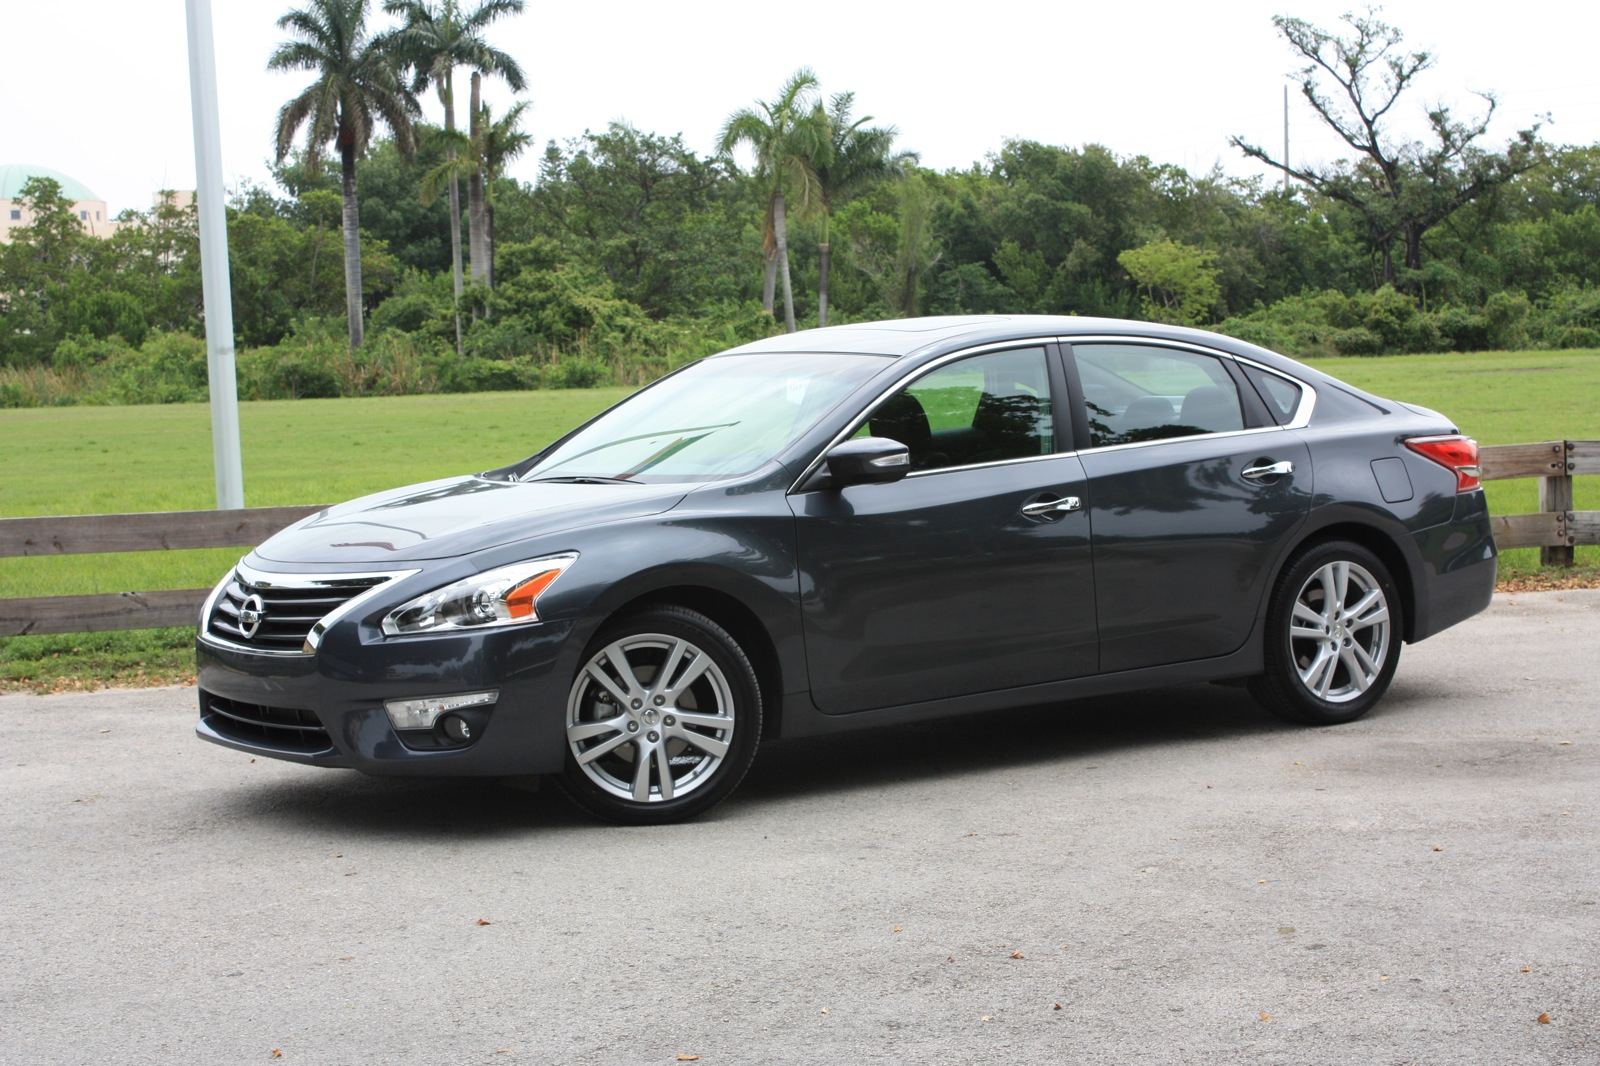 2013 nissan altima the most fuel efficient mid size car you can buy. Black Bedroom Furniture Sets. Home Design Ideas